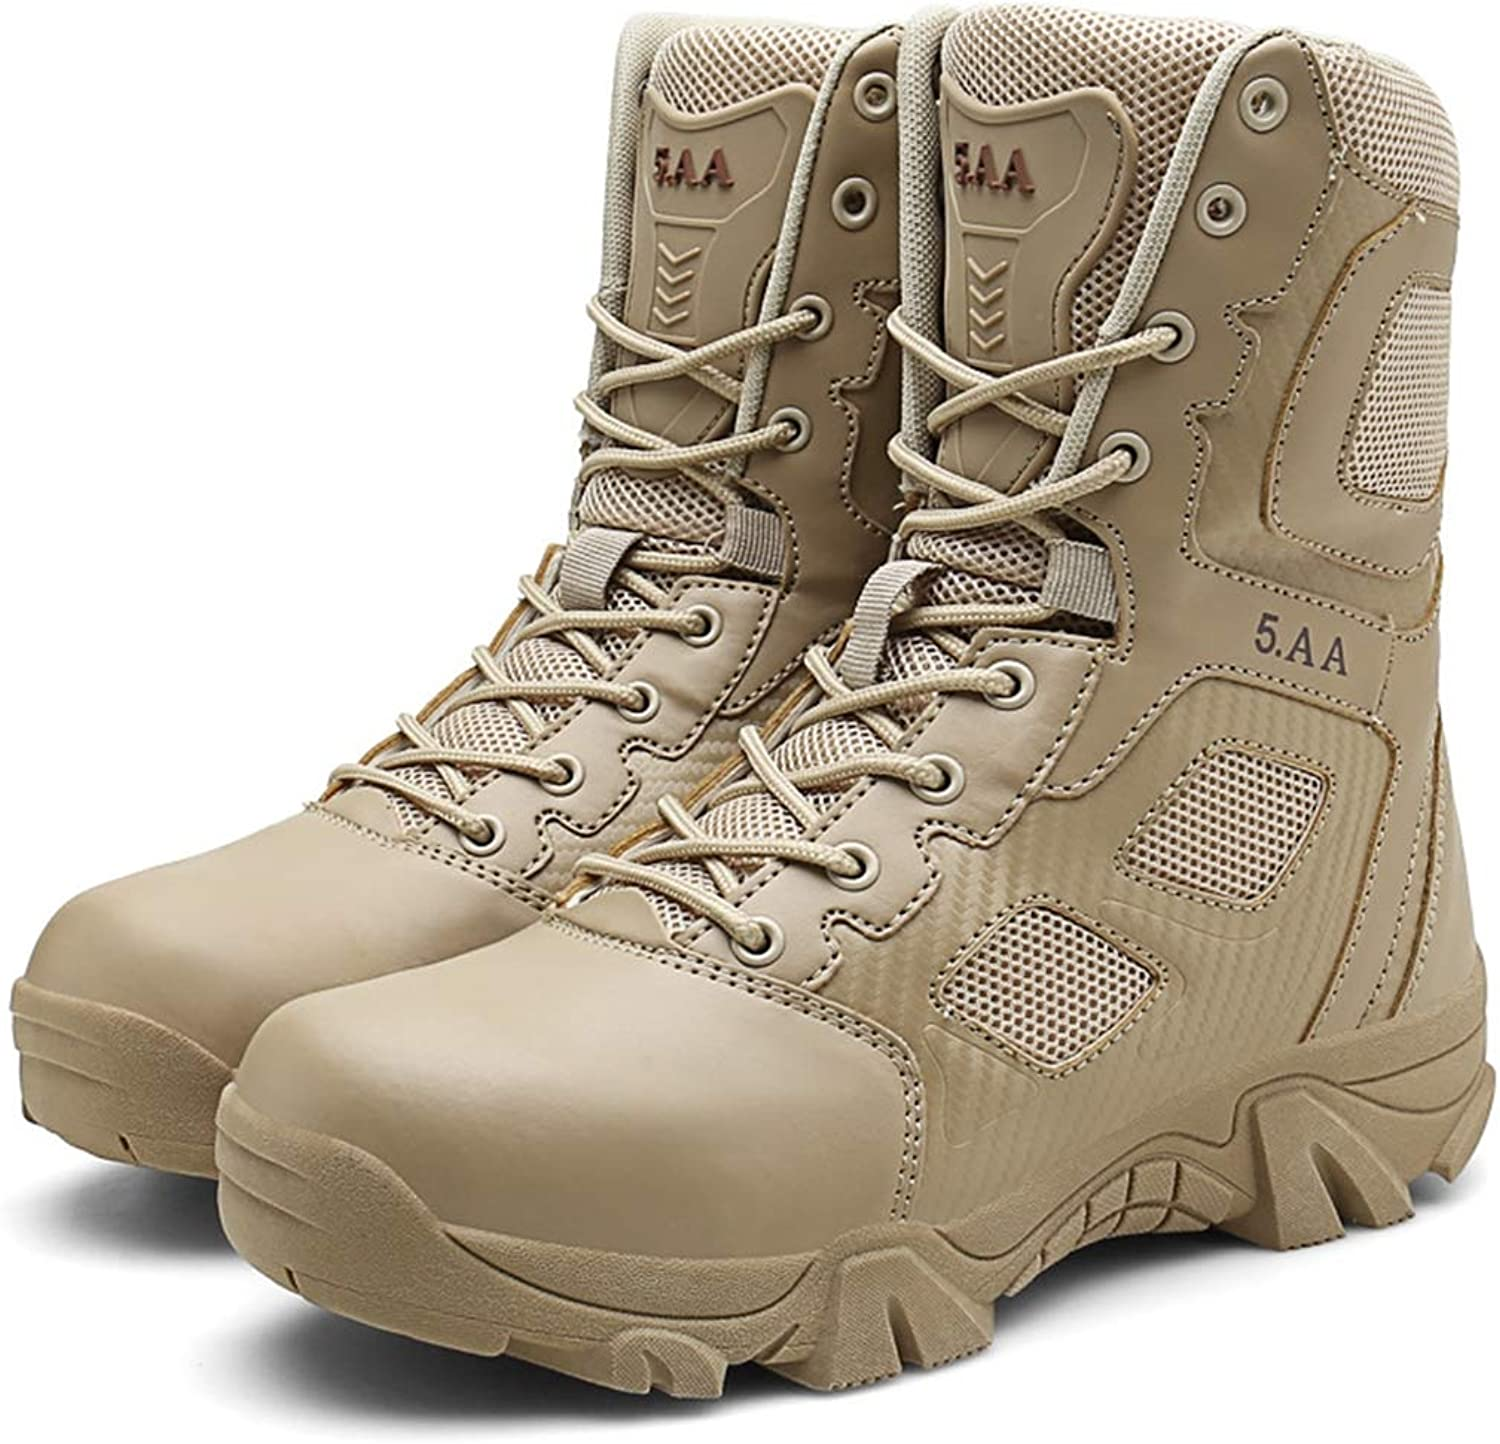 Men Military Combat Boots Ankle Army Lace-Up Leather Tactical Armed shoes Outdoor Hiking Desert Footwear